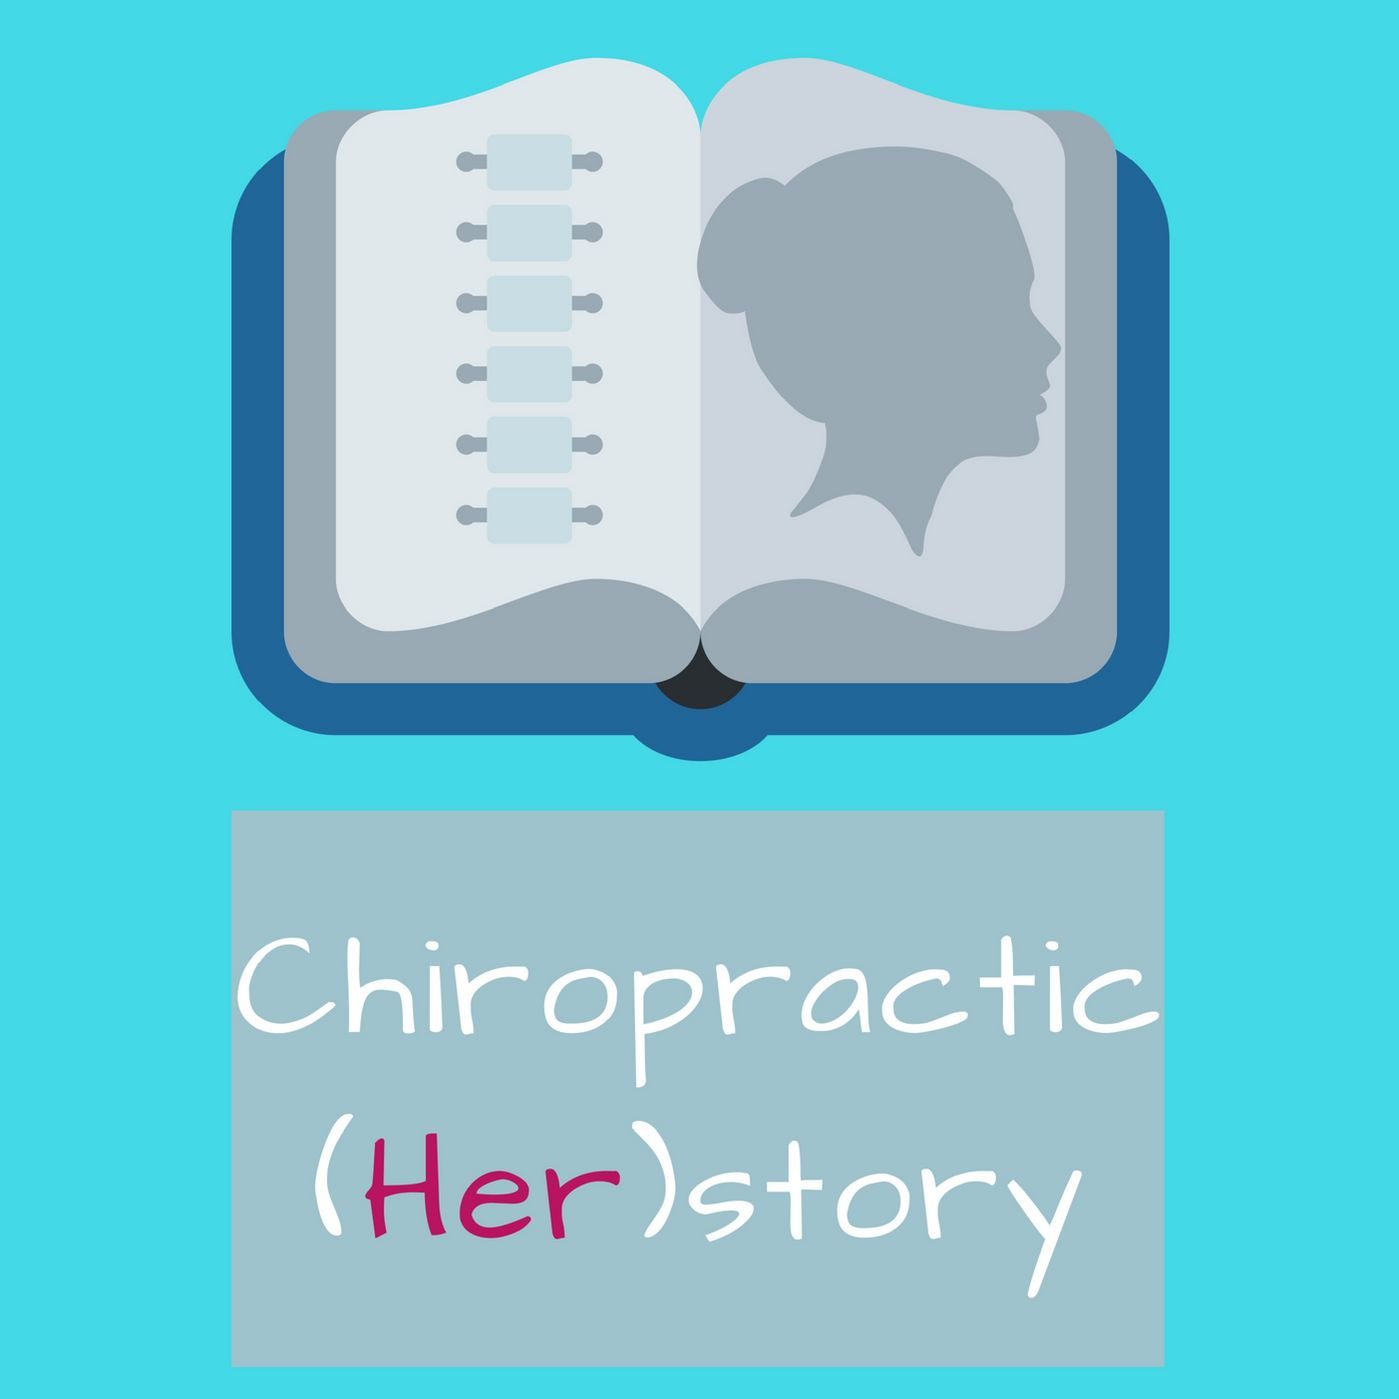 Dr. Leah Meadows- Chiropractic (Her)story Episode 45